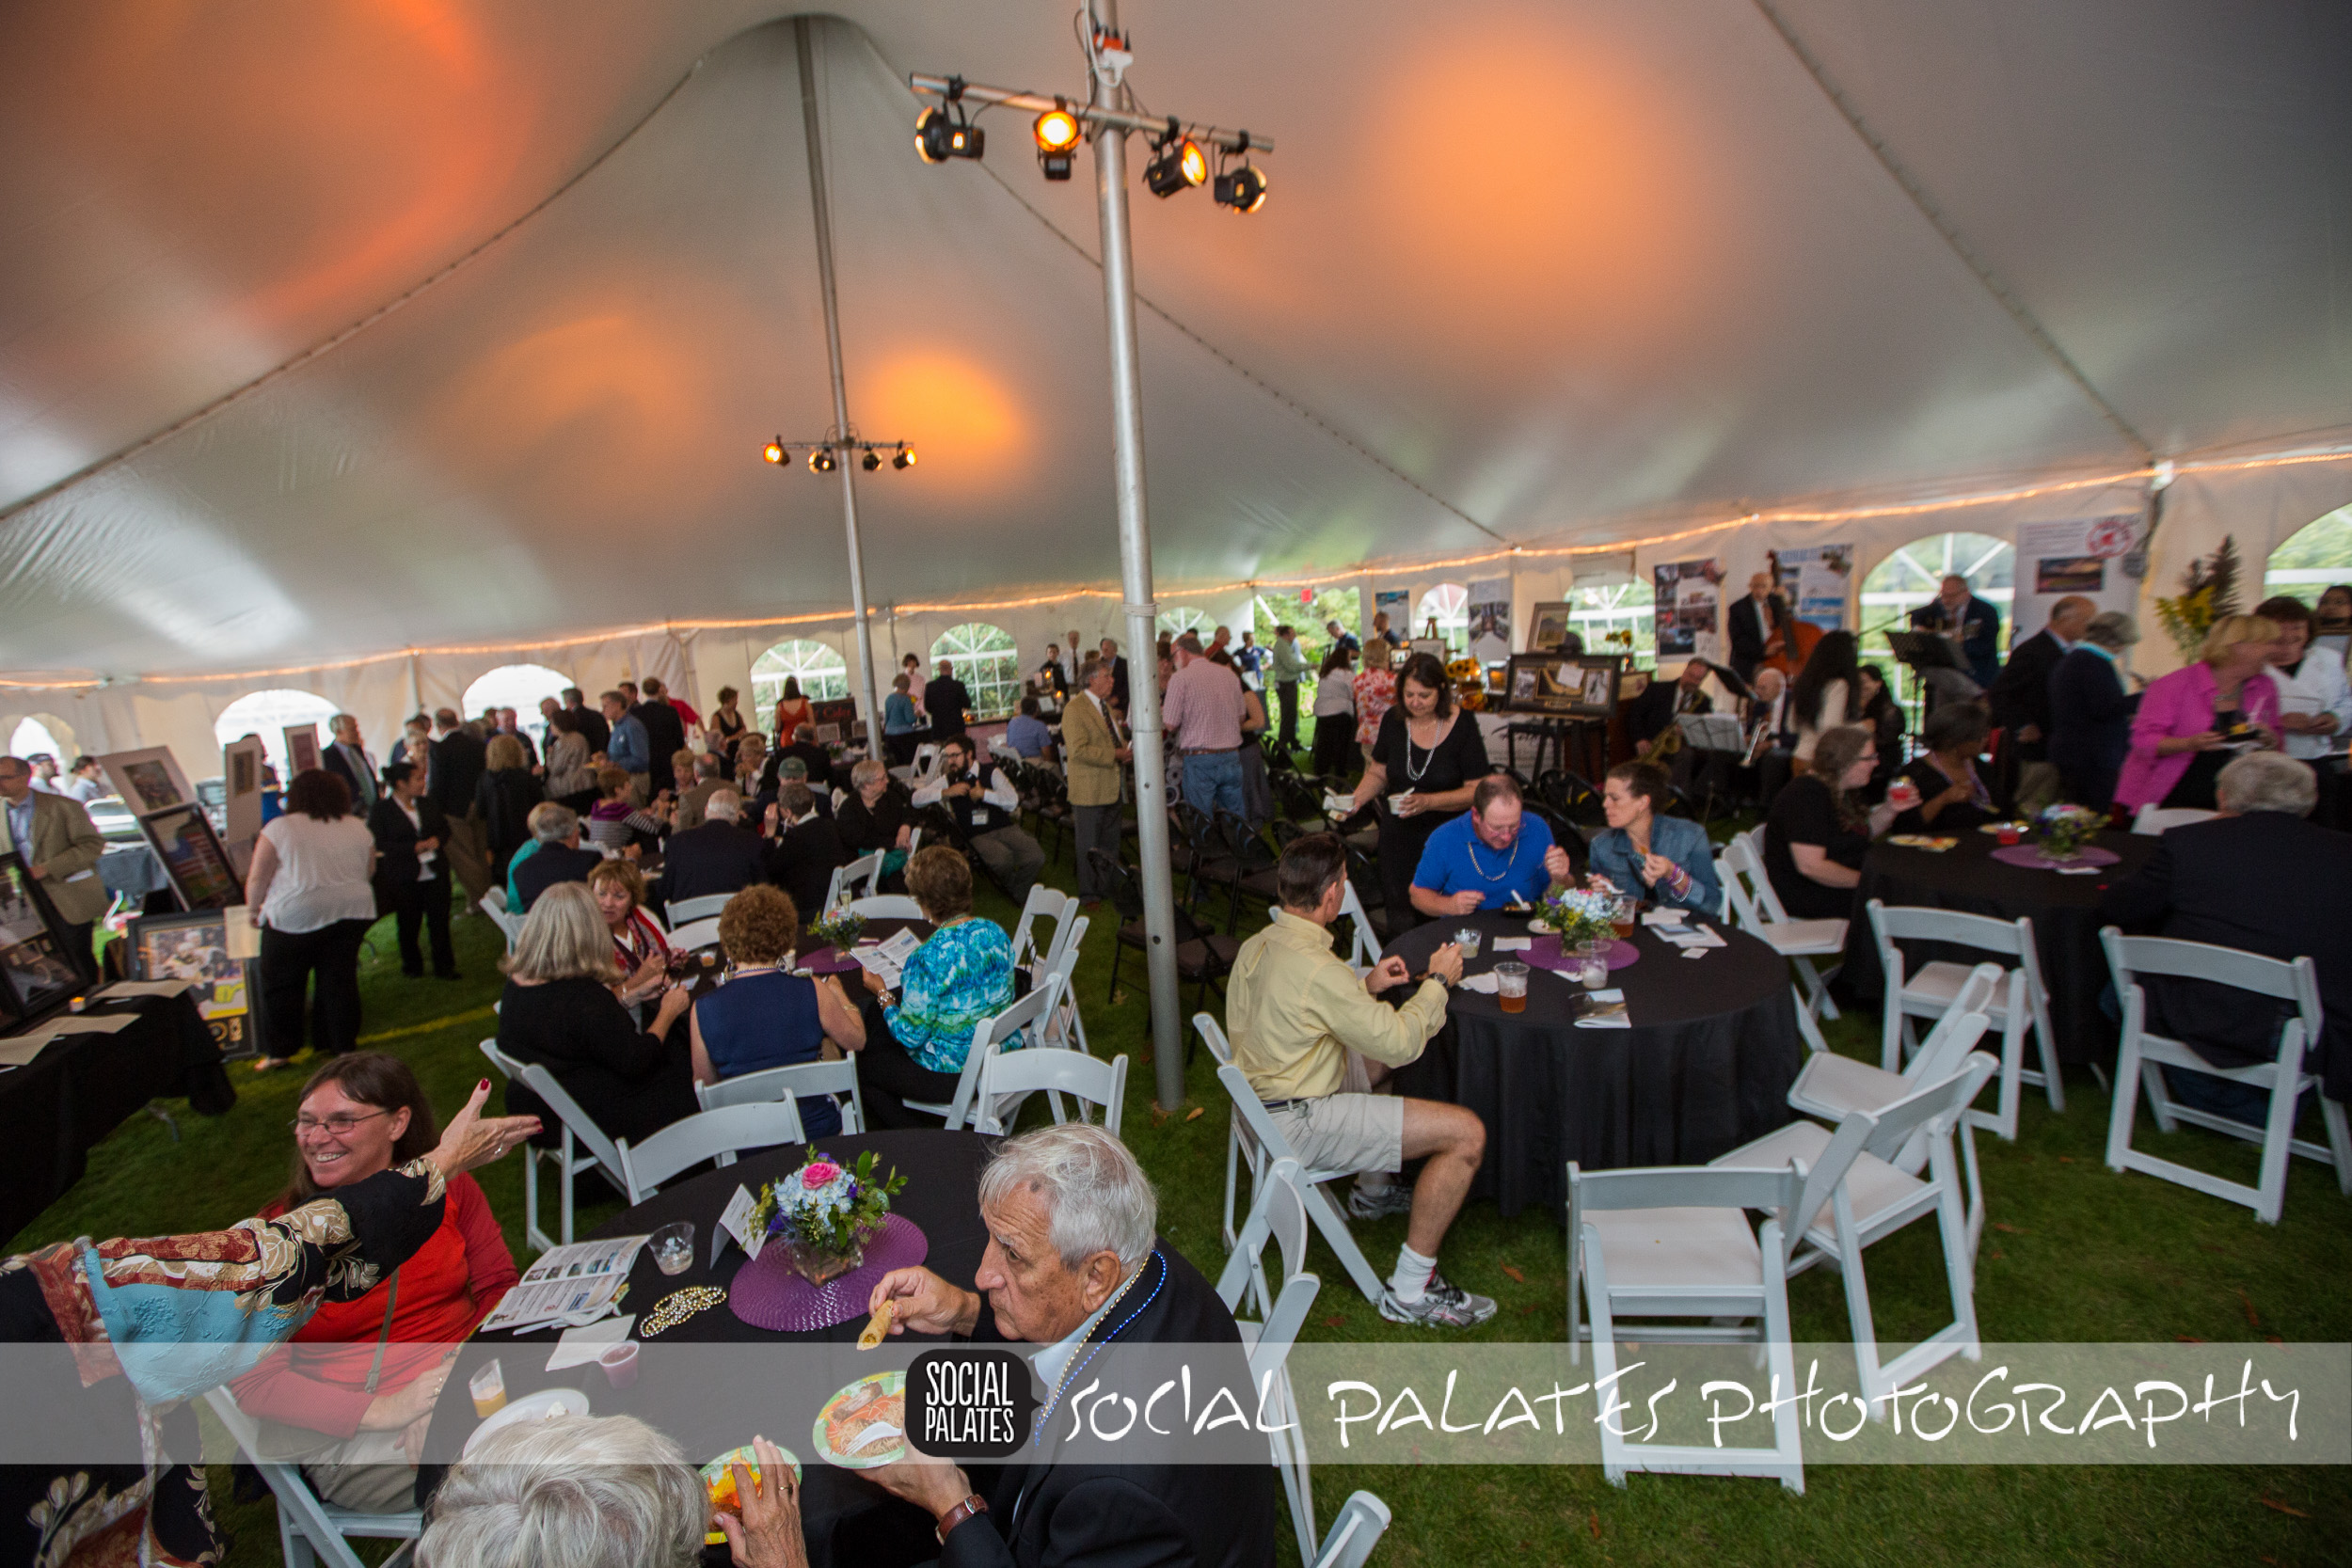 Taste_of_the_gables_2014-4709.jpg